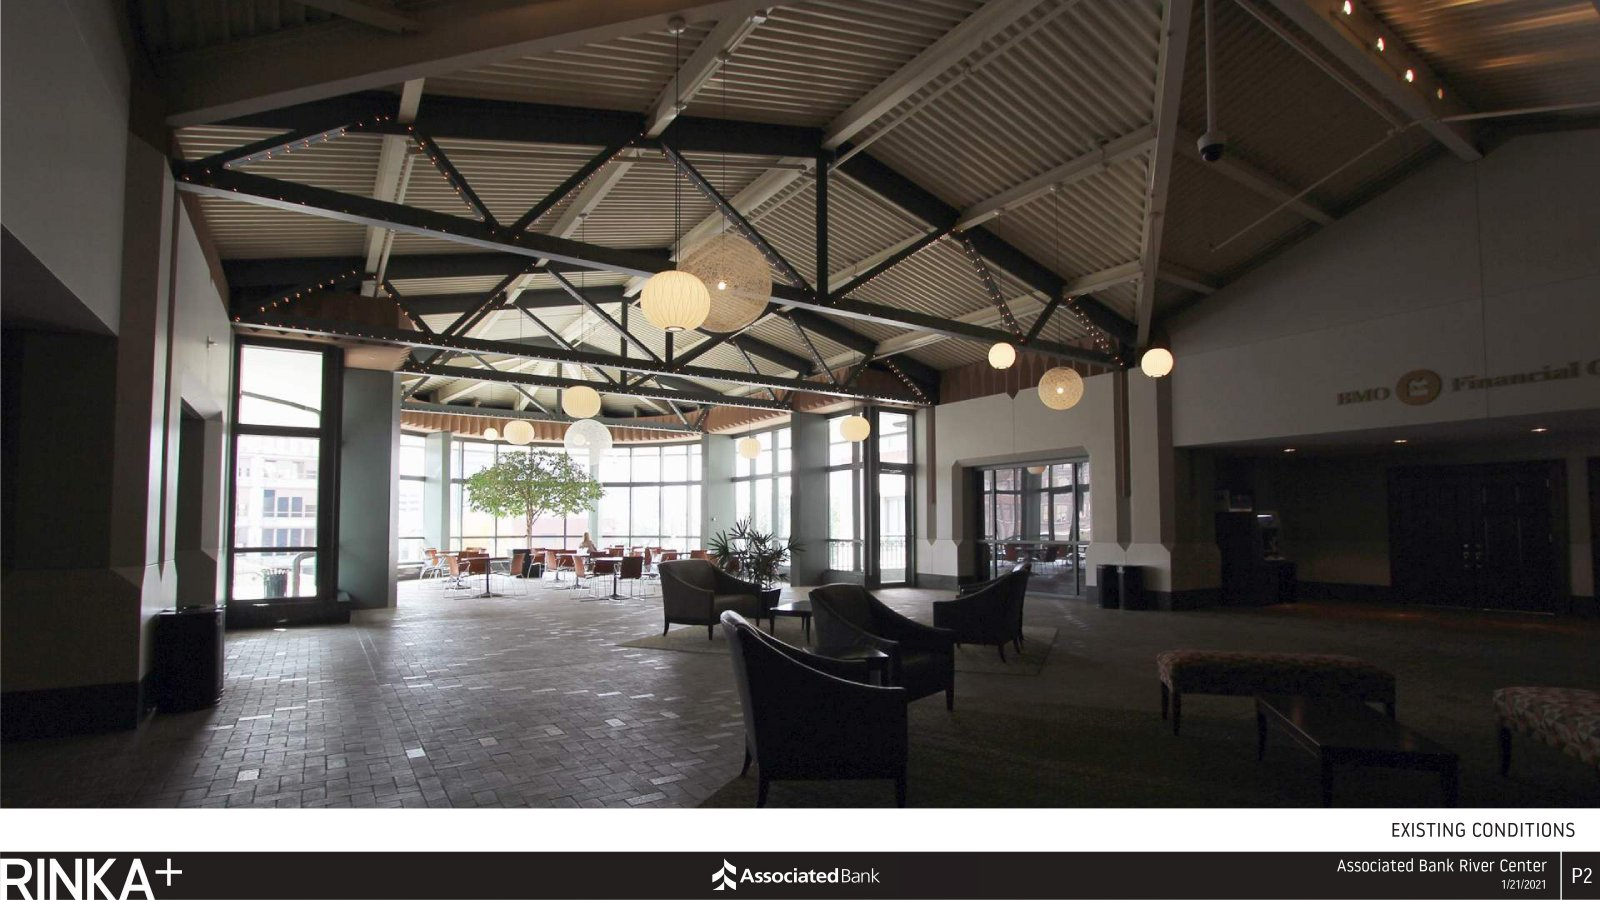 Associated Bank River Center - 2020 State